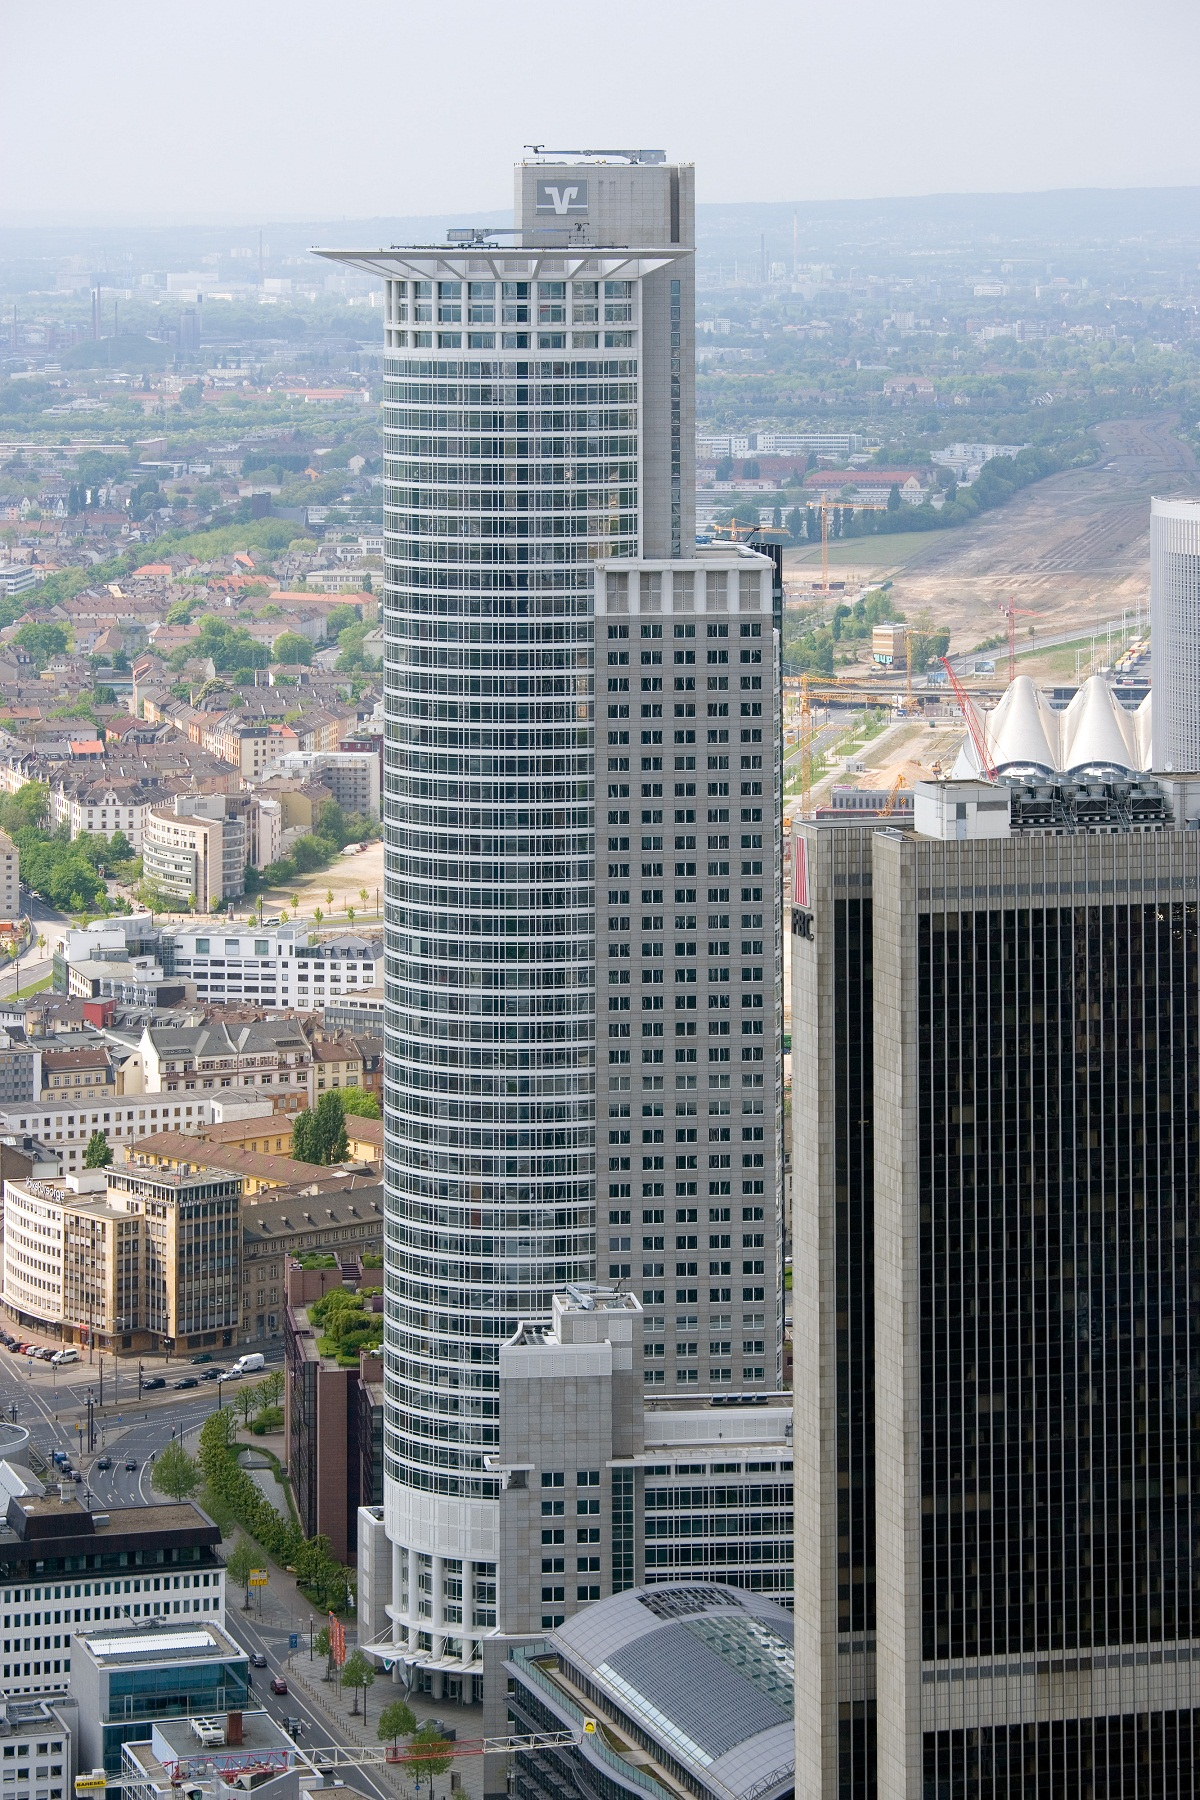 Frankfurt Architecture, Germany, Westend tower view from Maintower